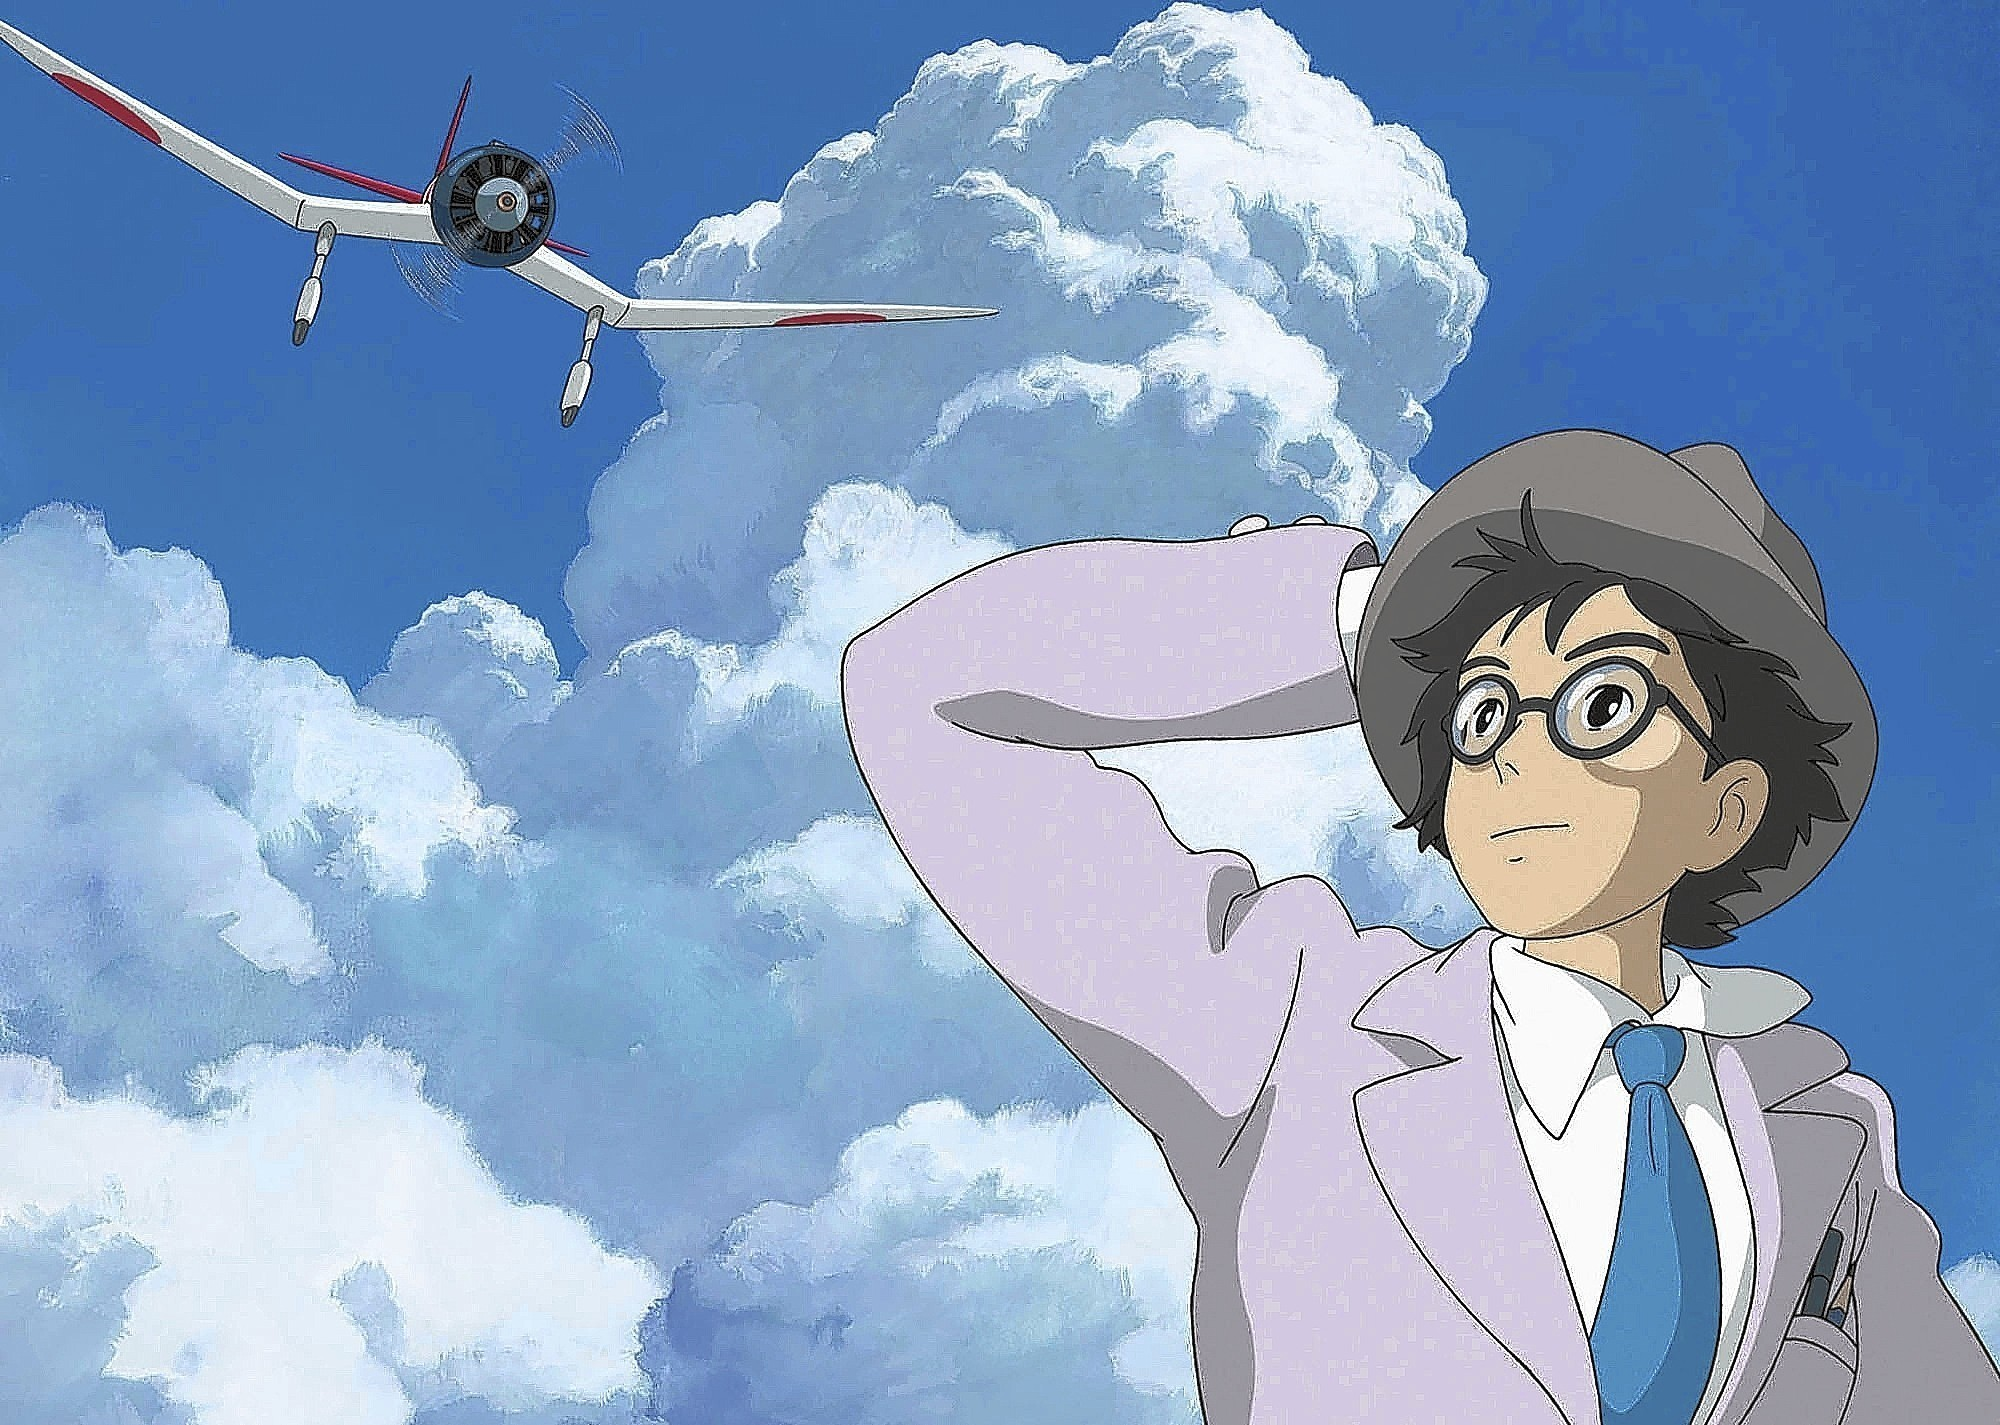 REVIEW: 'The Wind Rises' ★★&#9733 1/2